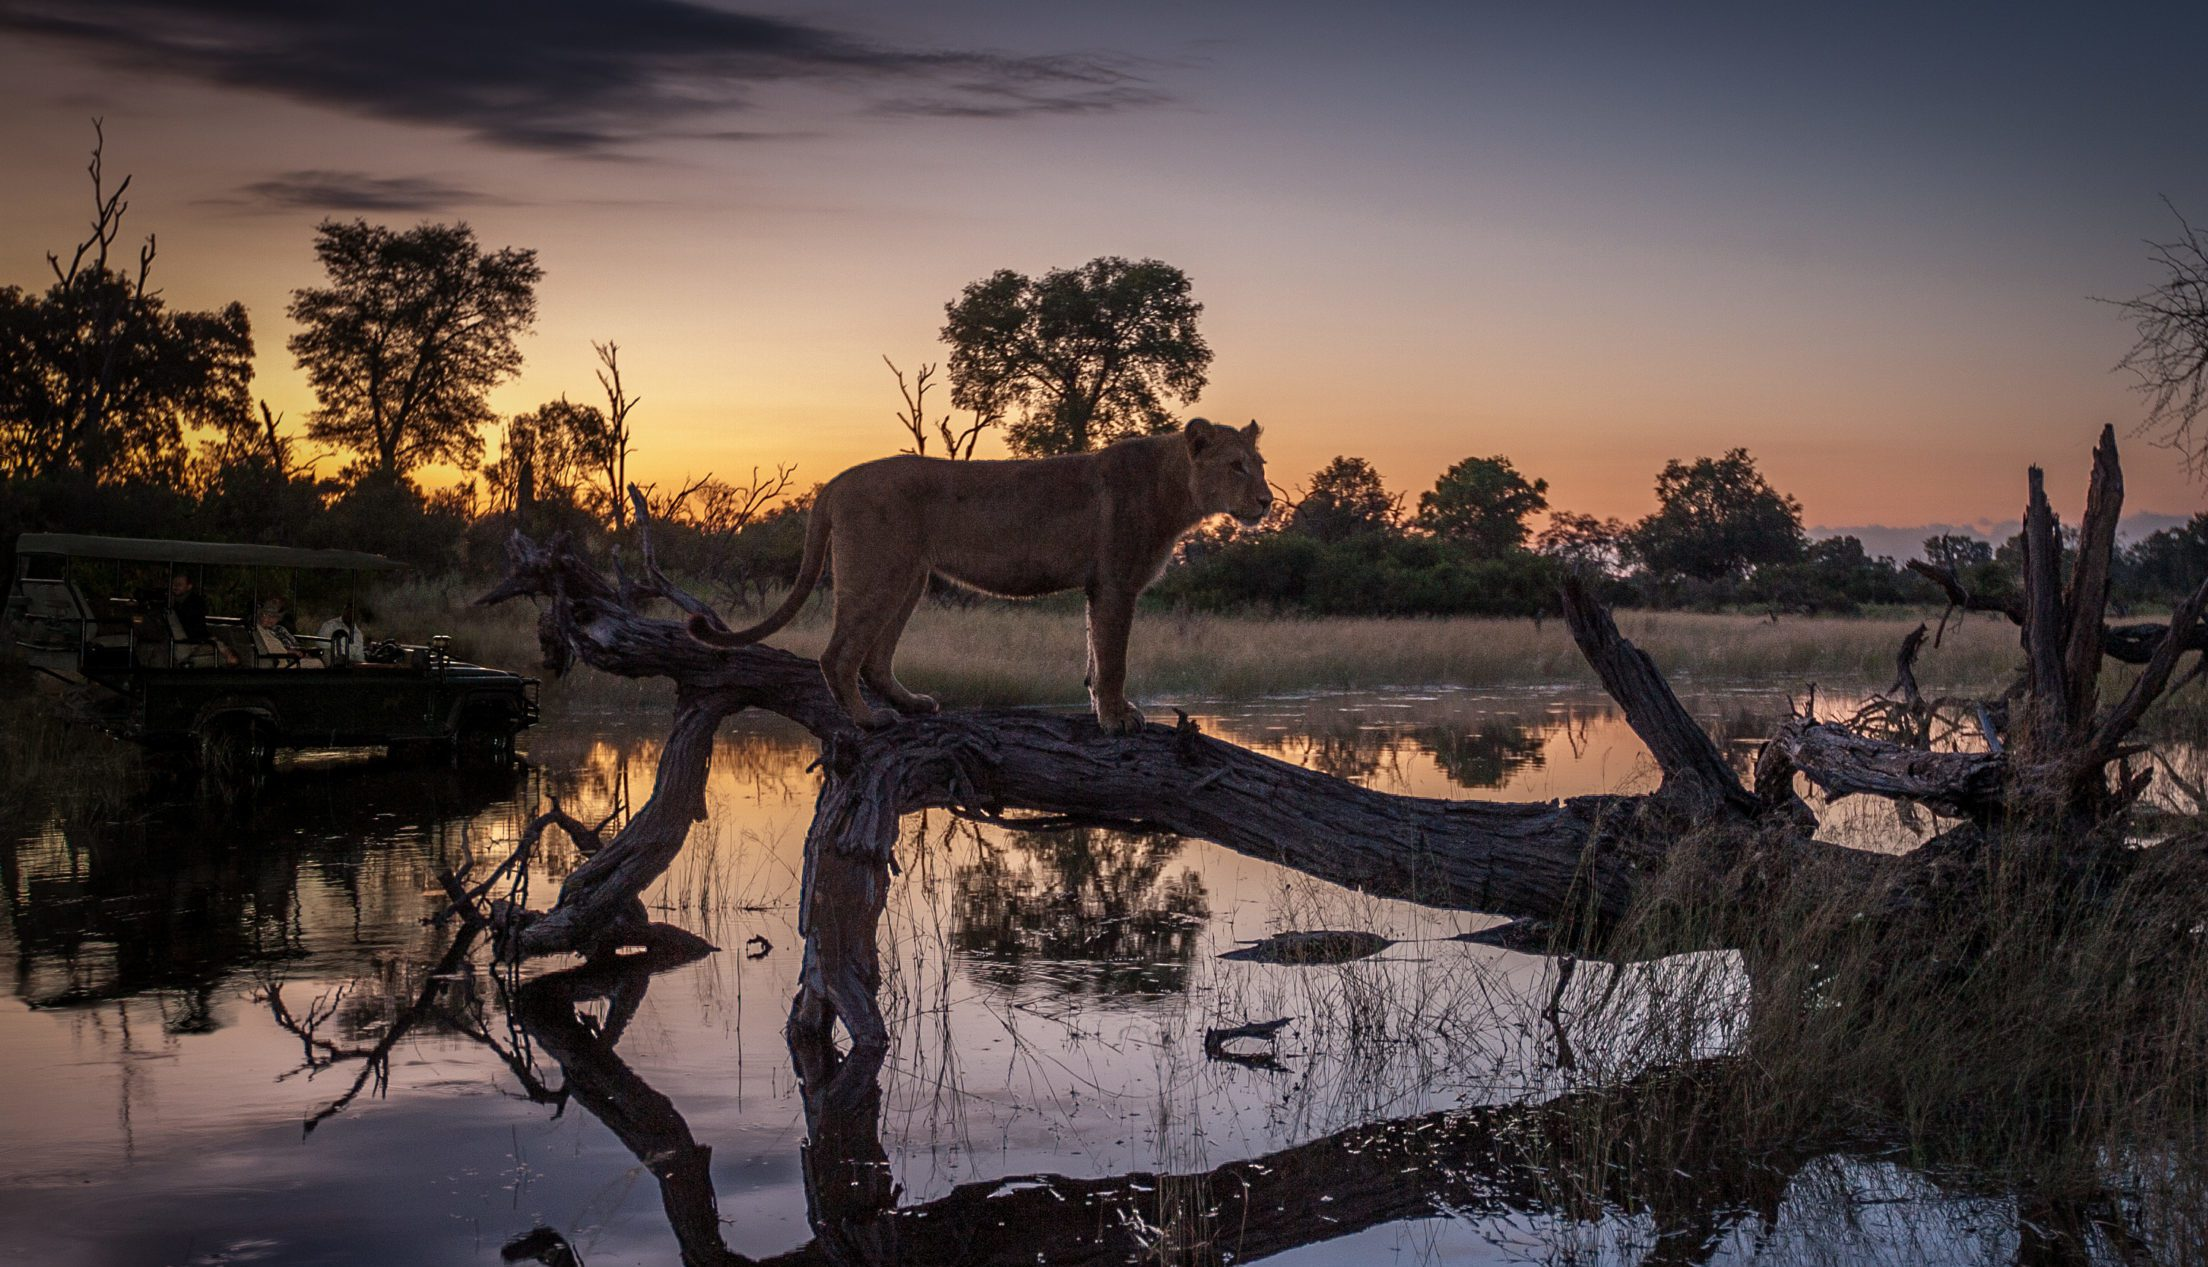 Chitabe Camp Okavango Delta leopard walking along fallen tree over water on the best botswana safari